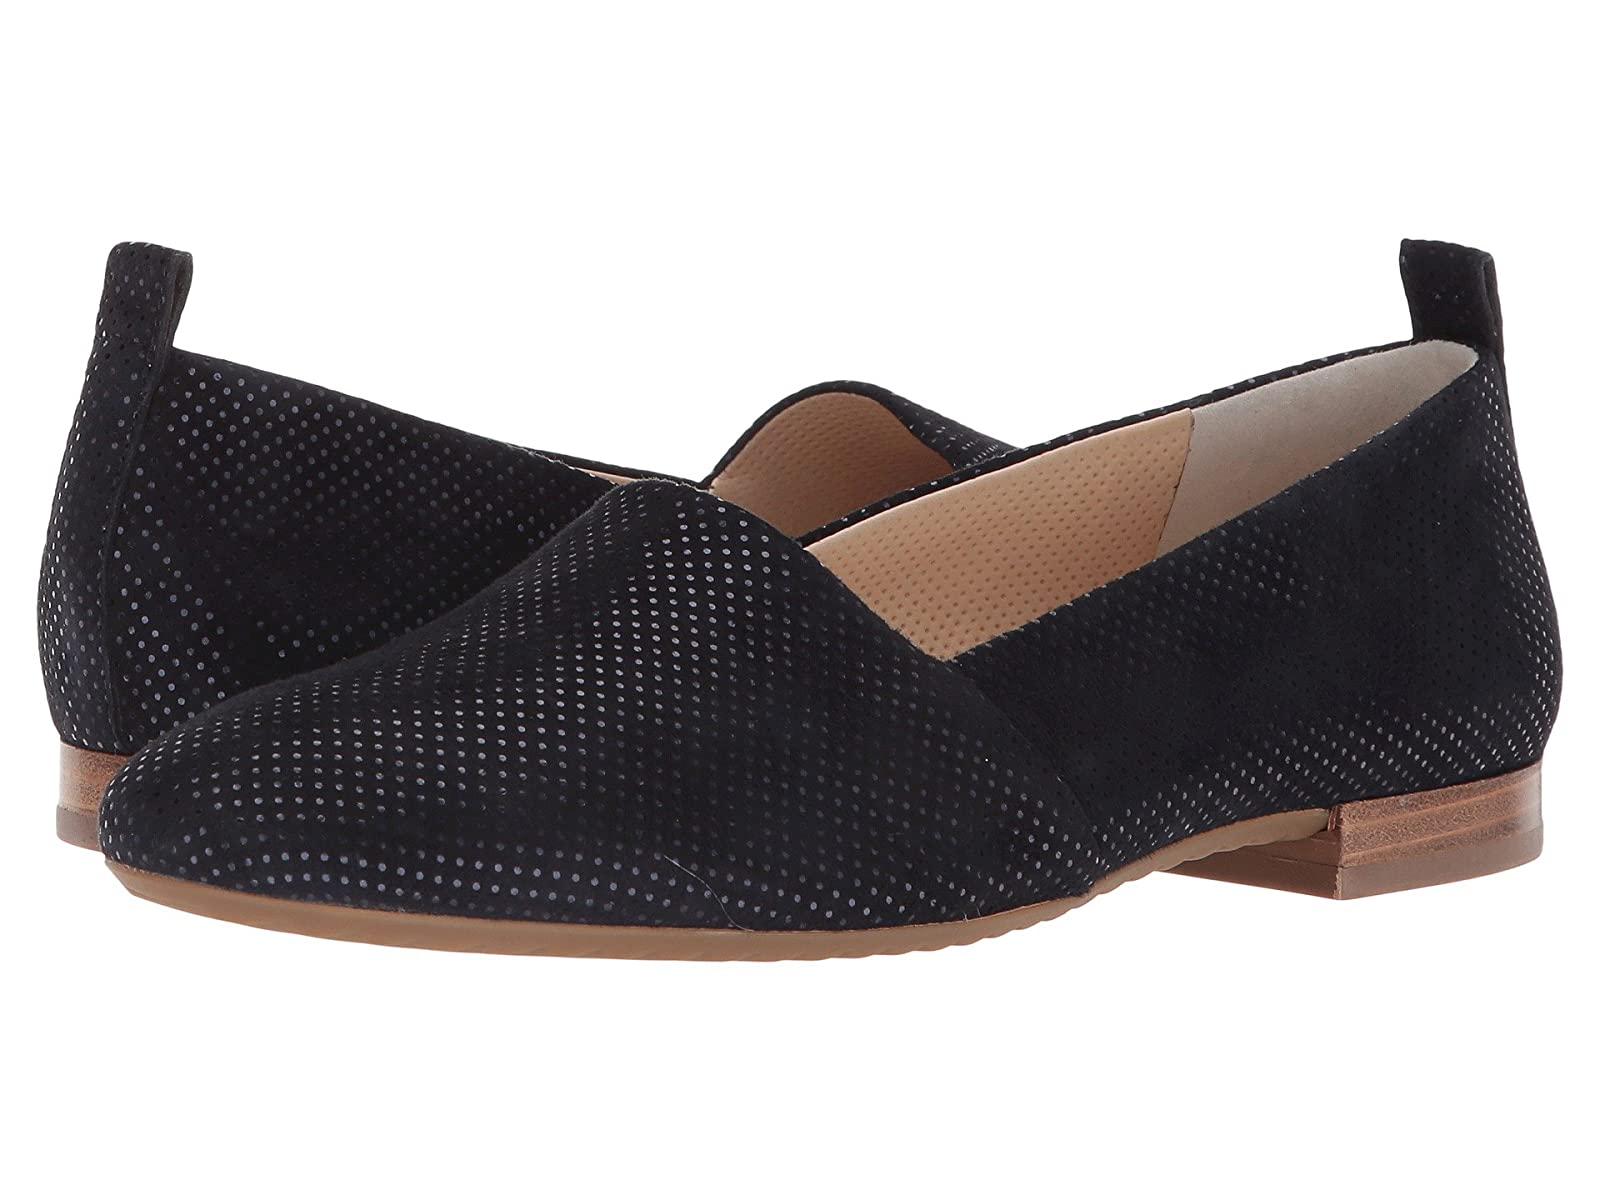 Paul Green Shelby FlatCheap and distinctive eye-catching shoes